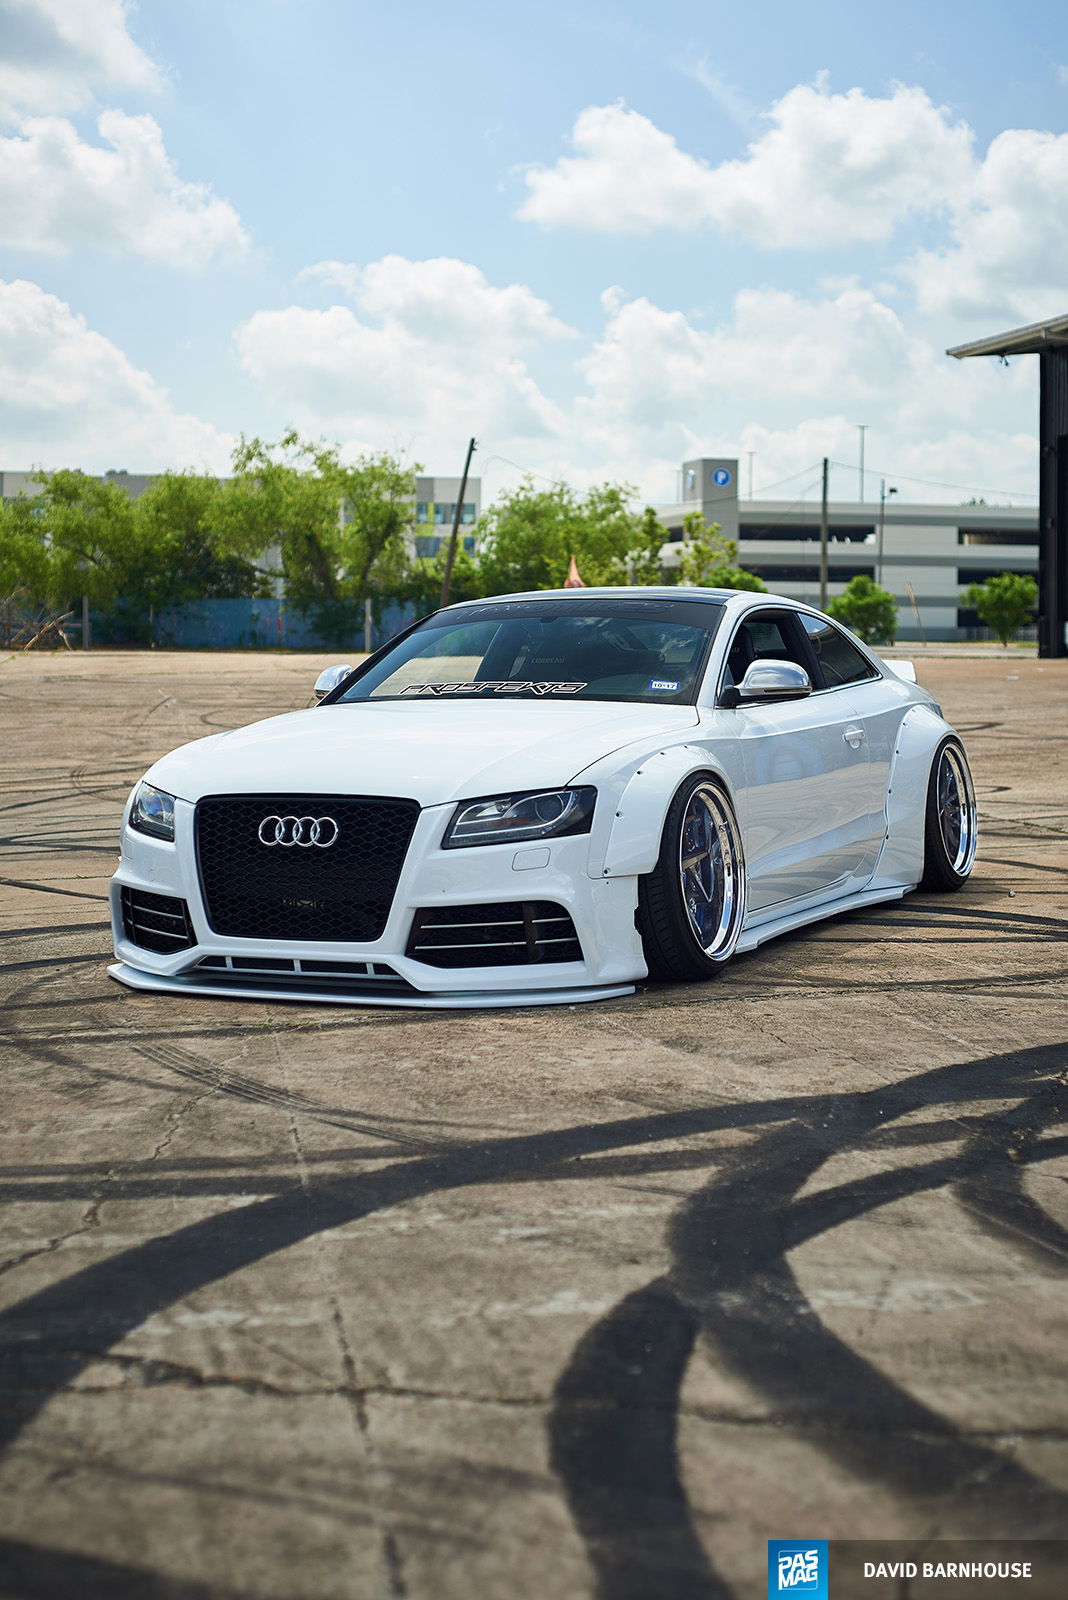 14 Thomas Ho 2009 Audi S5 pasmag builds to follow